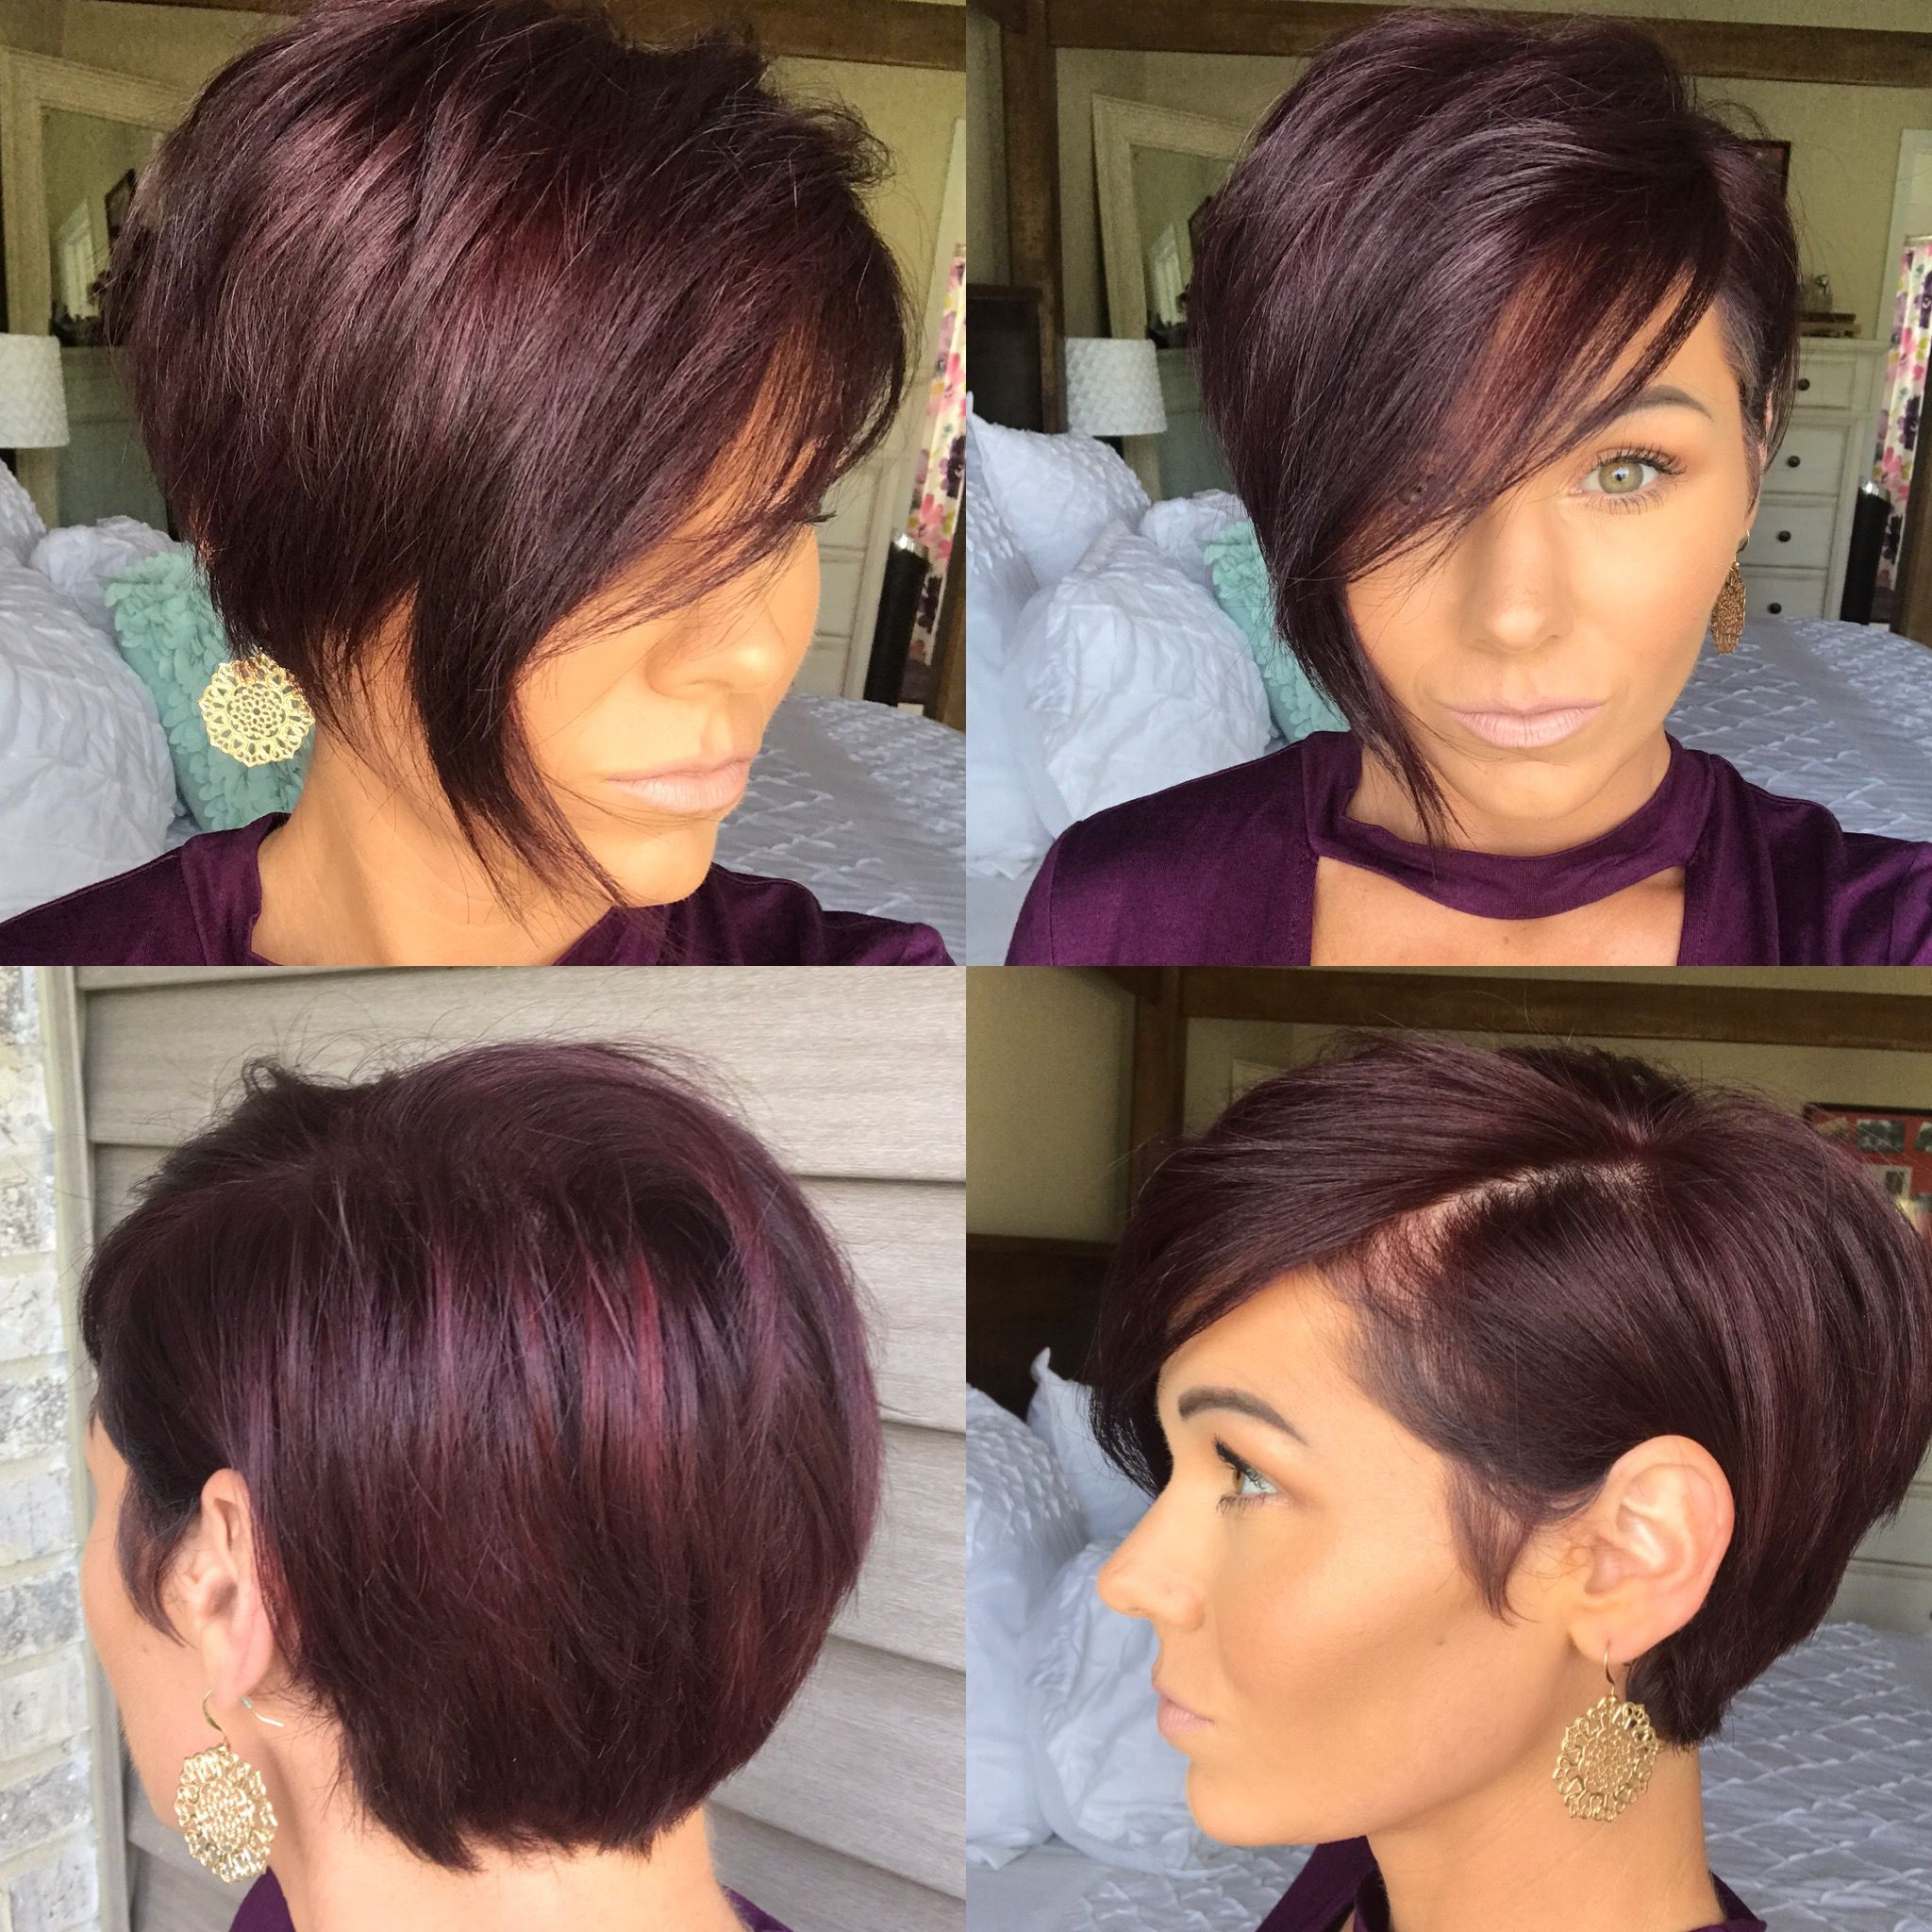 Pin On Do The 'do Pertaining To Most Up To Date Wavy Asymmetric Bob Hairstyles With Short Hair At One Side (View 9 of 20)